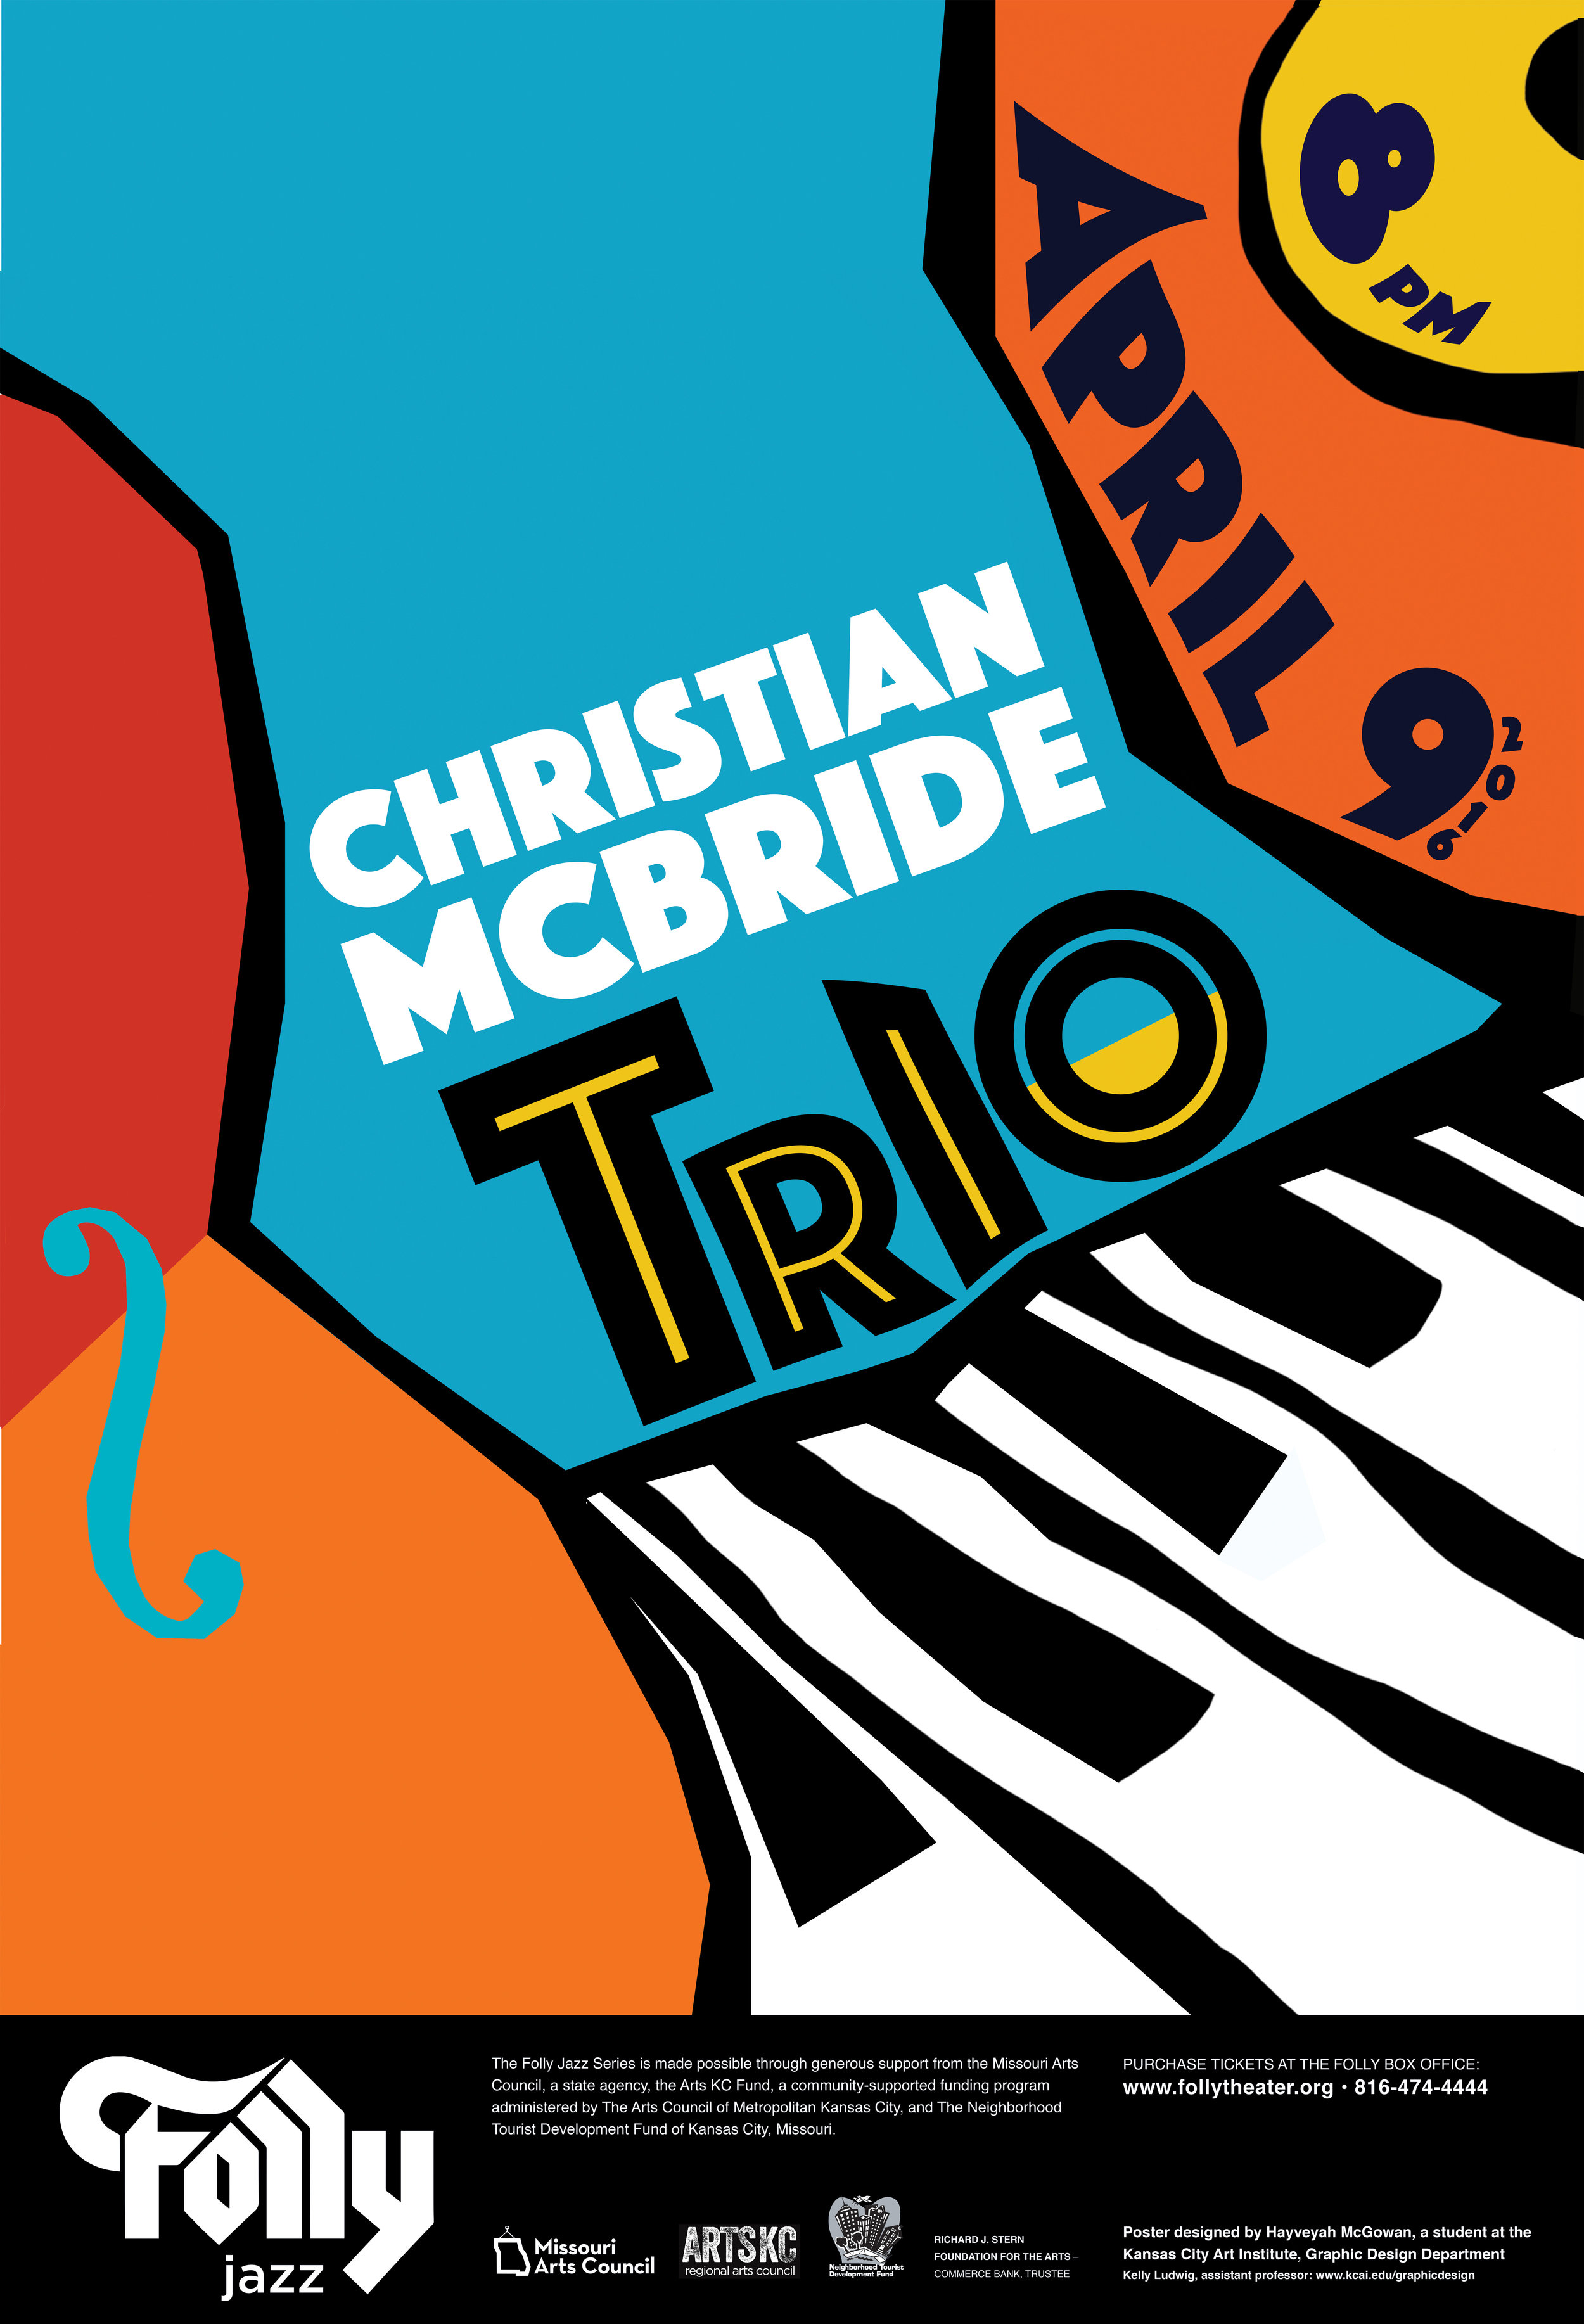 Official poster  Christian McBride Trio  for the 2016 Folly Jazz Series